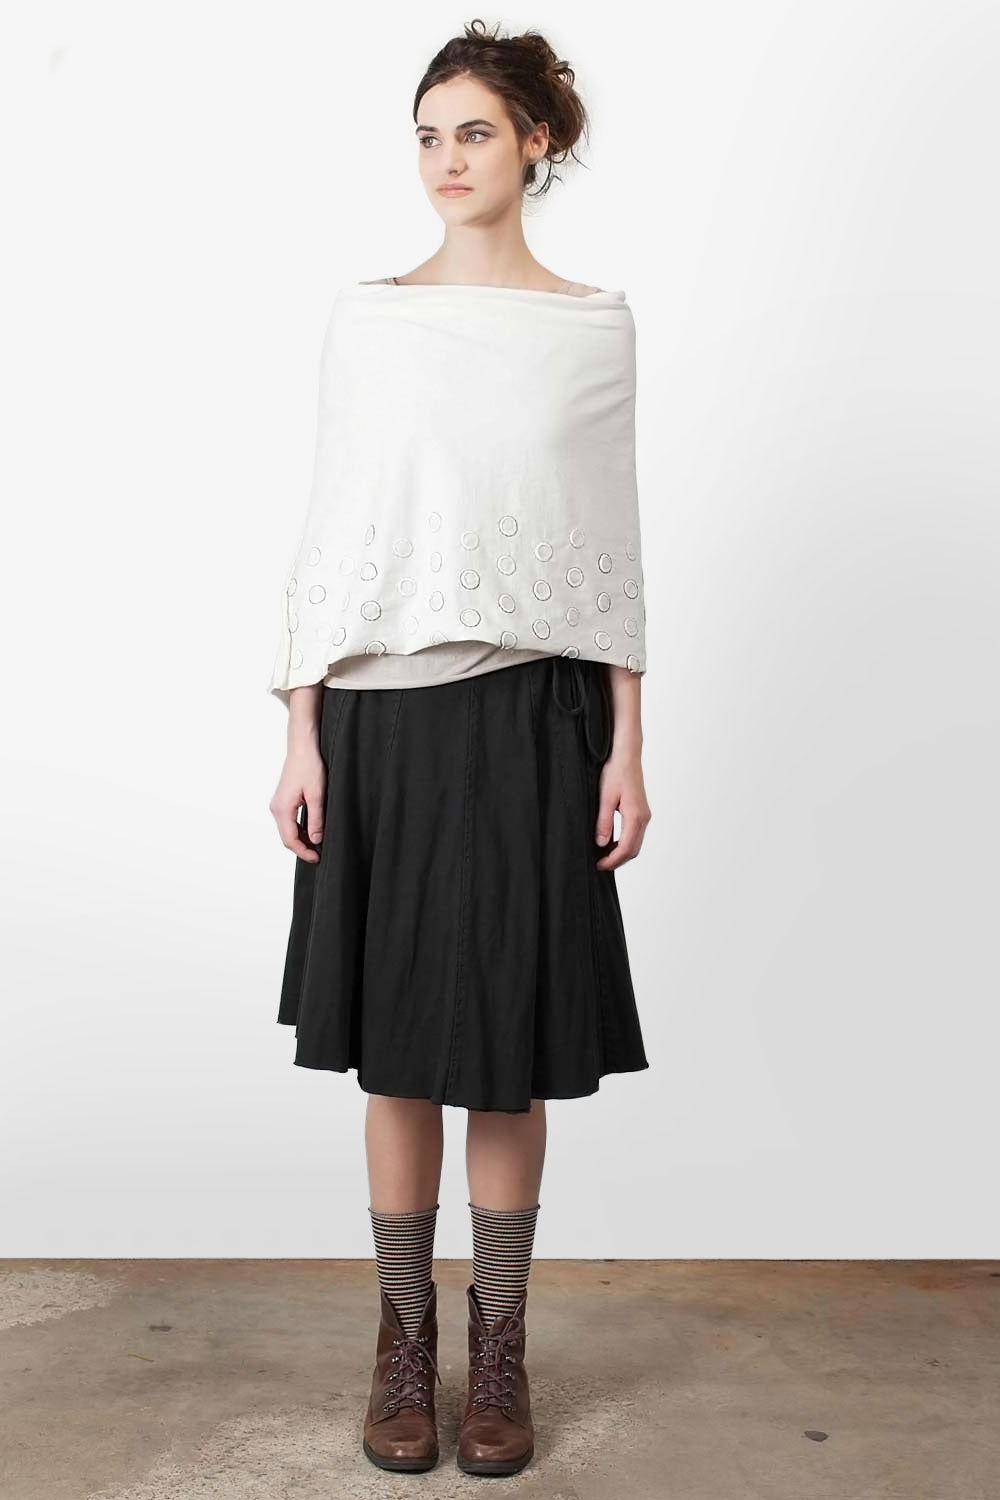 The School of Making Full Wrap Skirt Pattern Hand-Sewn Wrap Skirt made with Organic Cotton